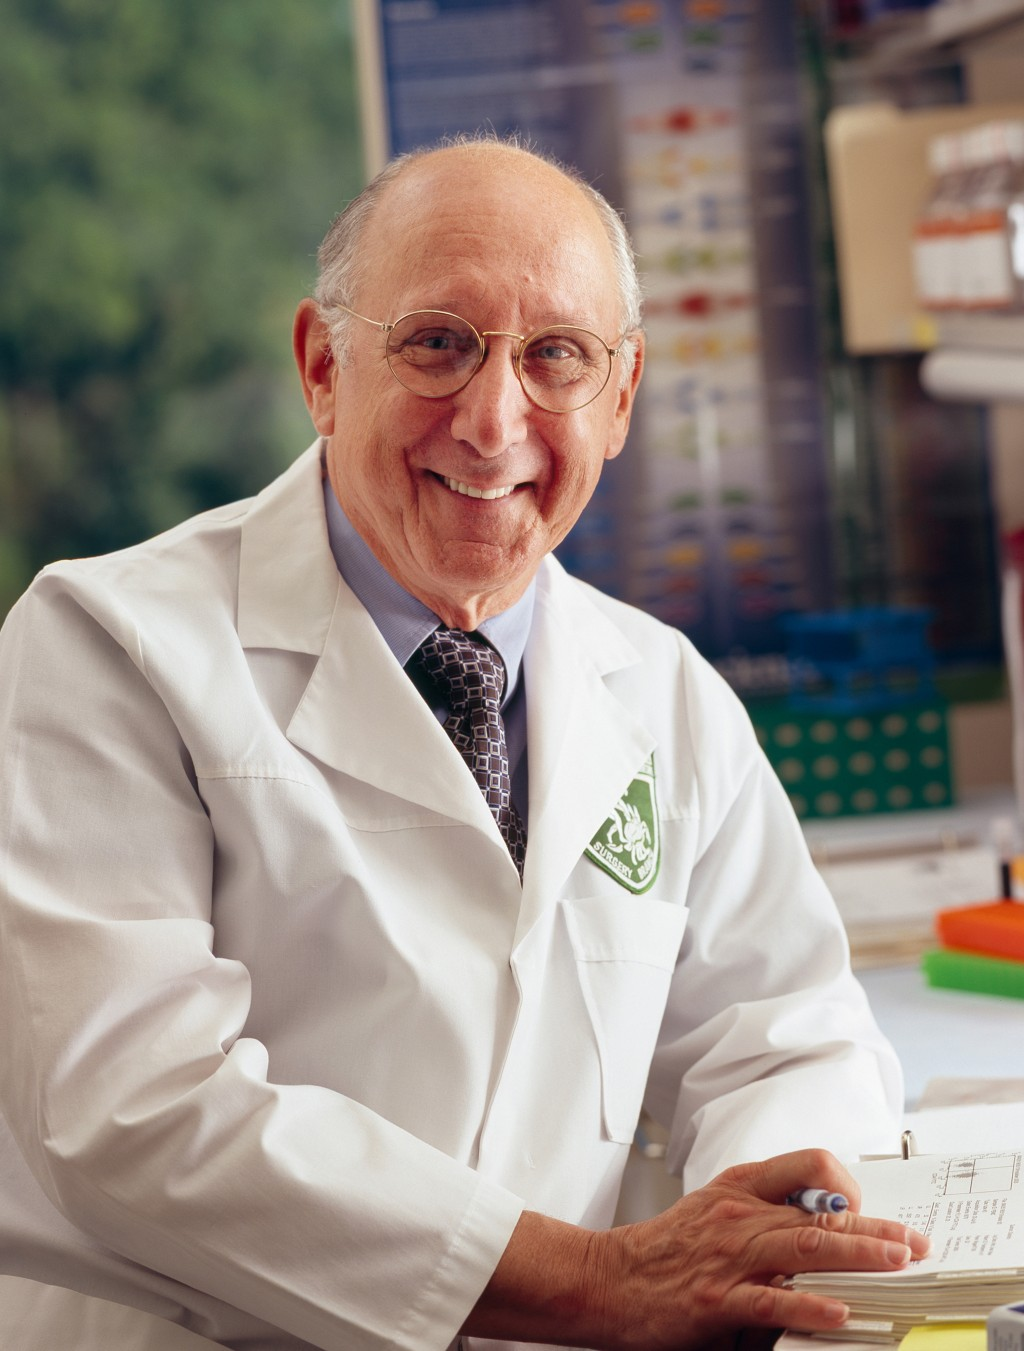 This undated photo provided by the National Cancer Institute shows Dr. Steven A. Rosenberg, M.D., Ph.D., winner of the 2018 Albany Medical Center's Pr...